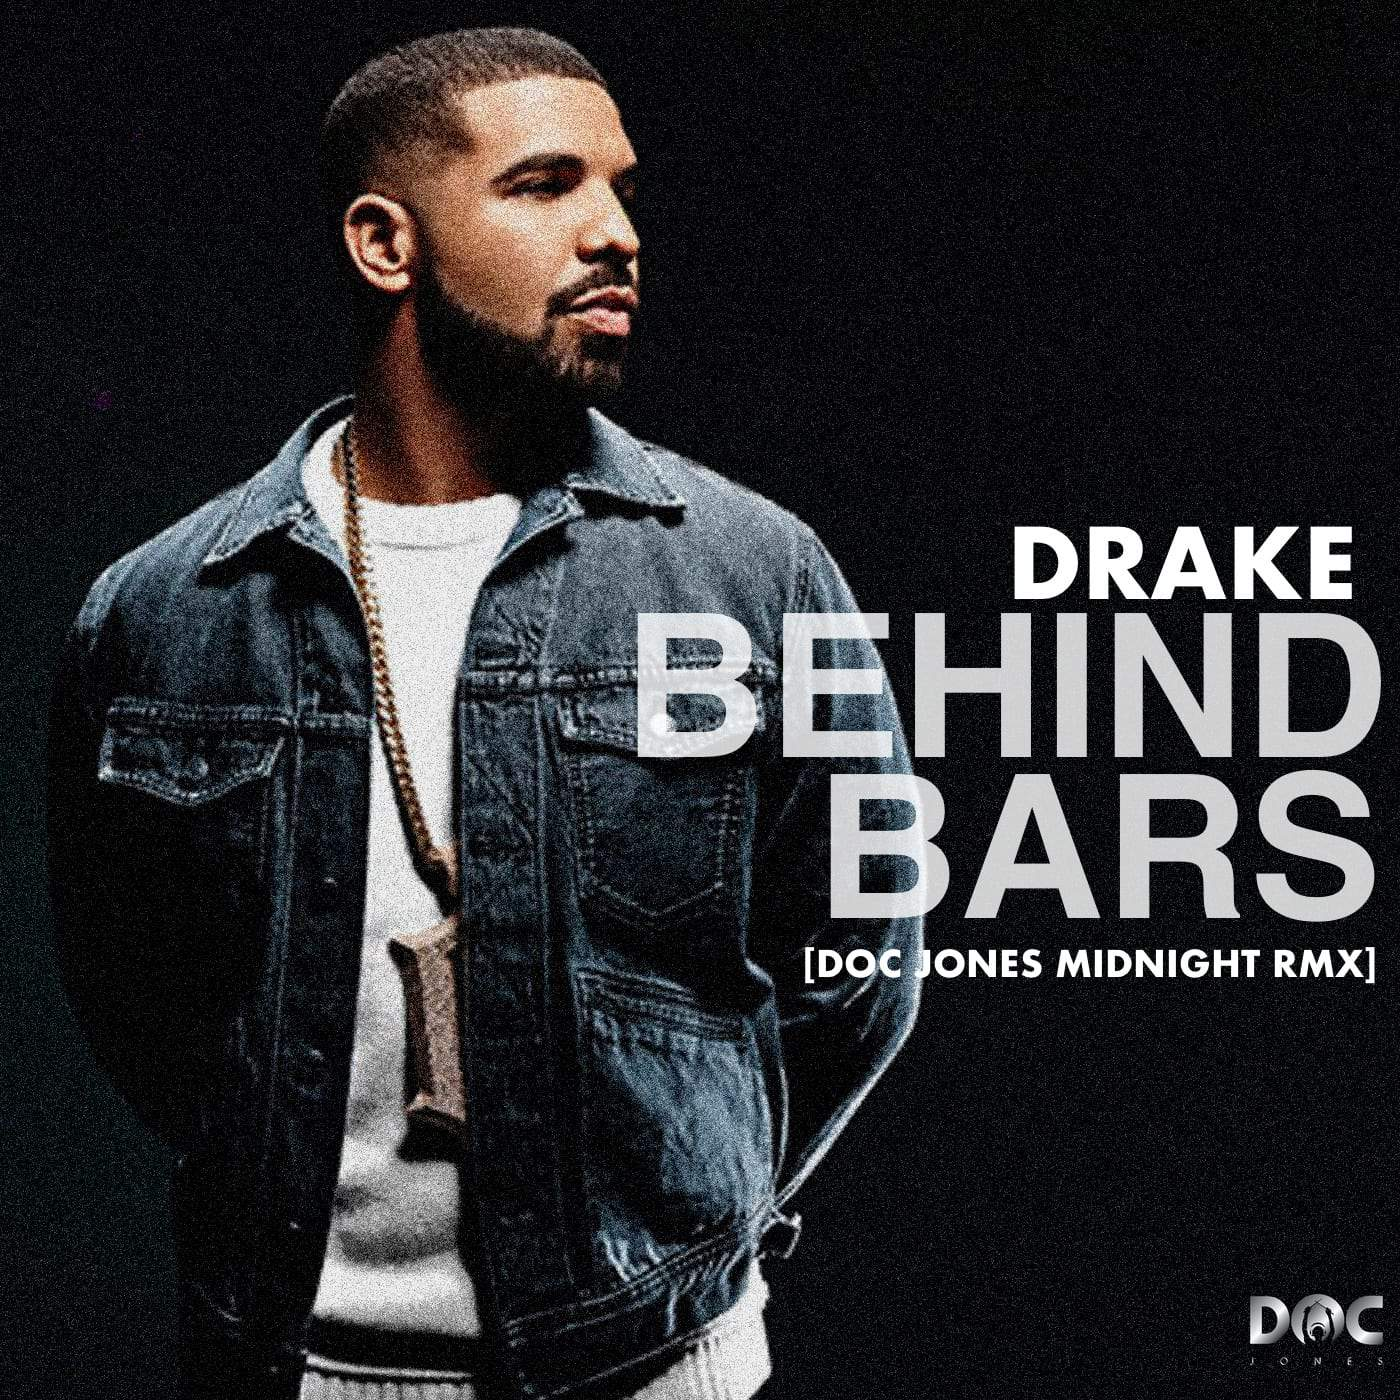 Drake - Behind Bars - Doc Jones Midnight RMX